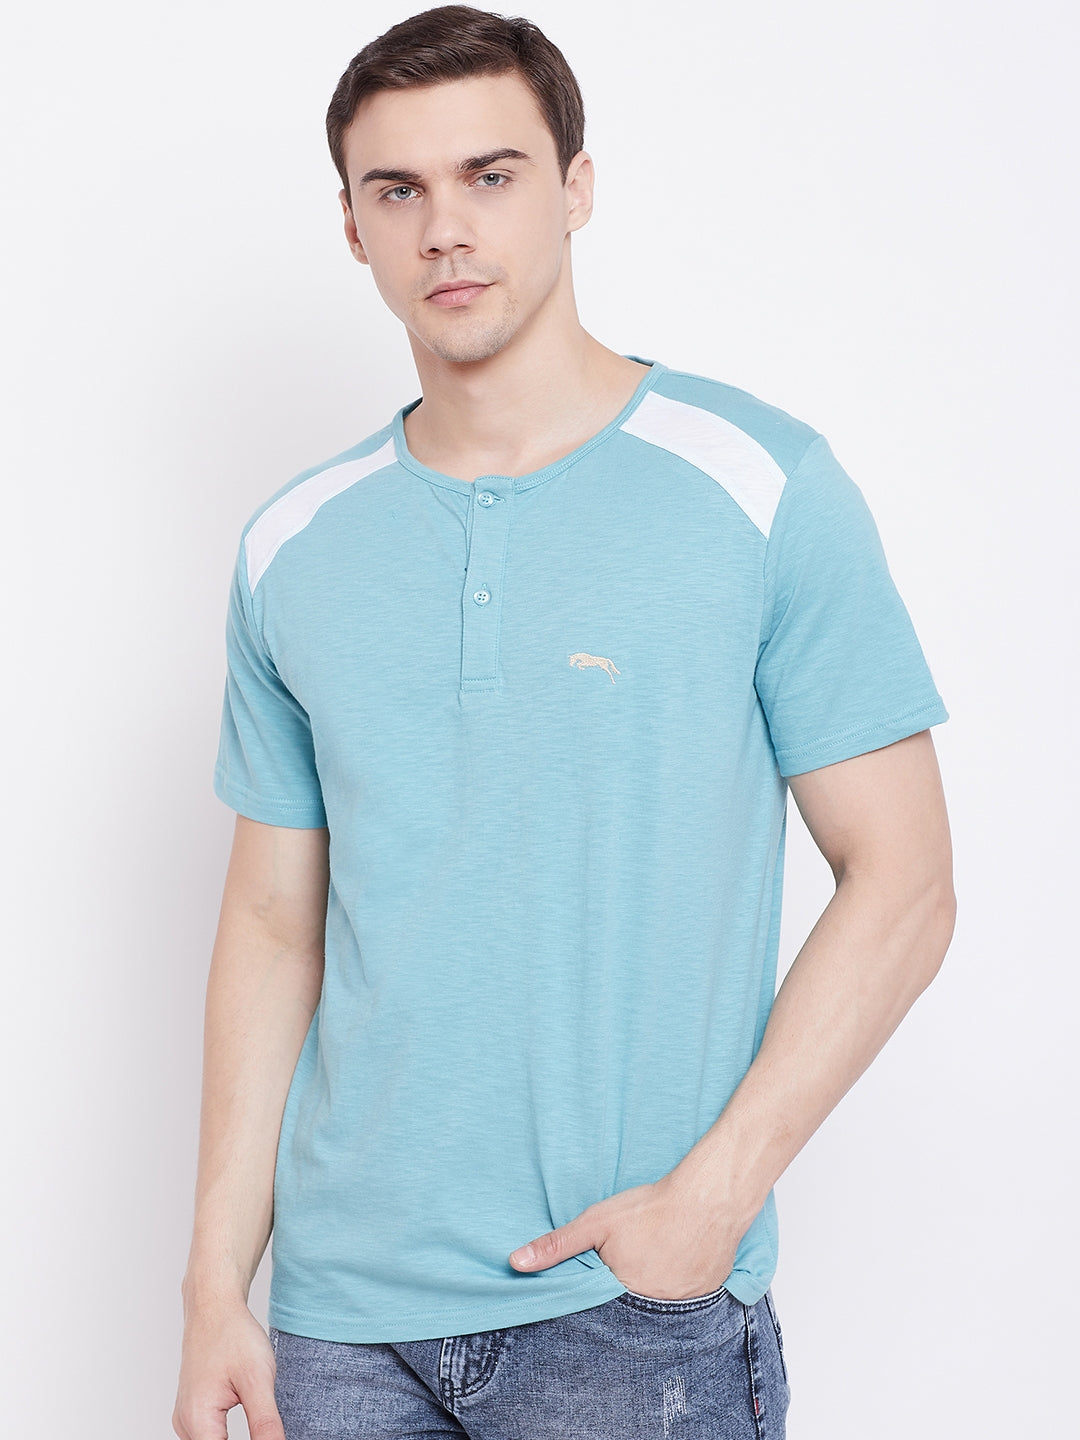 JUMP USA Men Blue Solid Round Neck T-shirt - JUMP USA